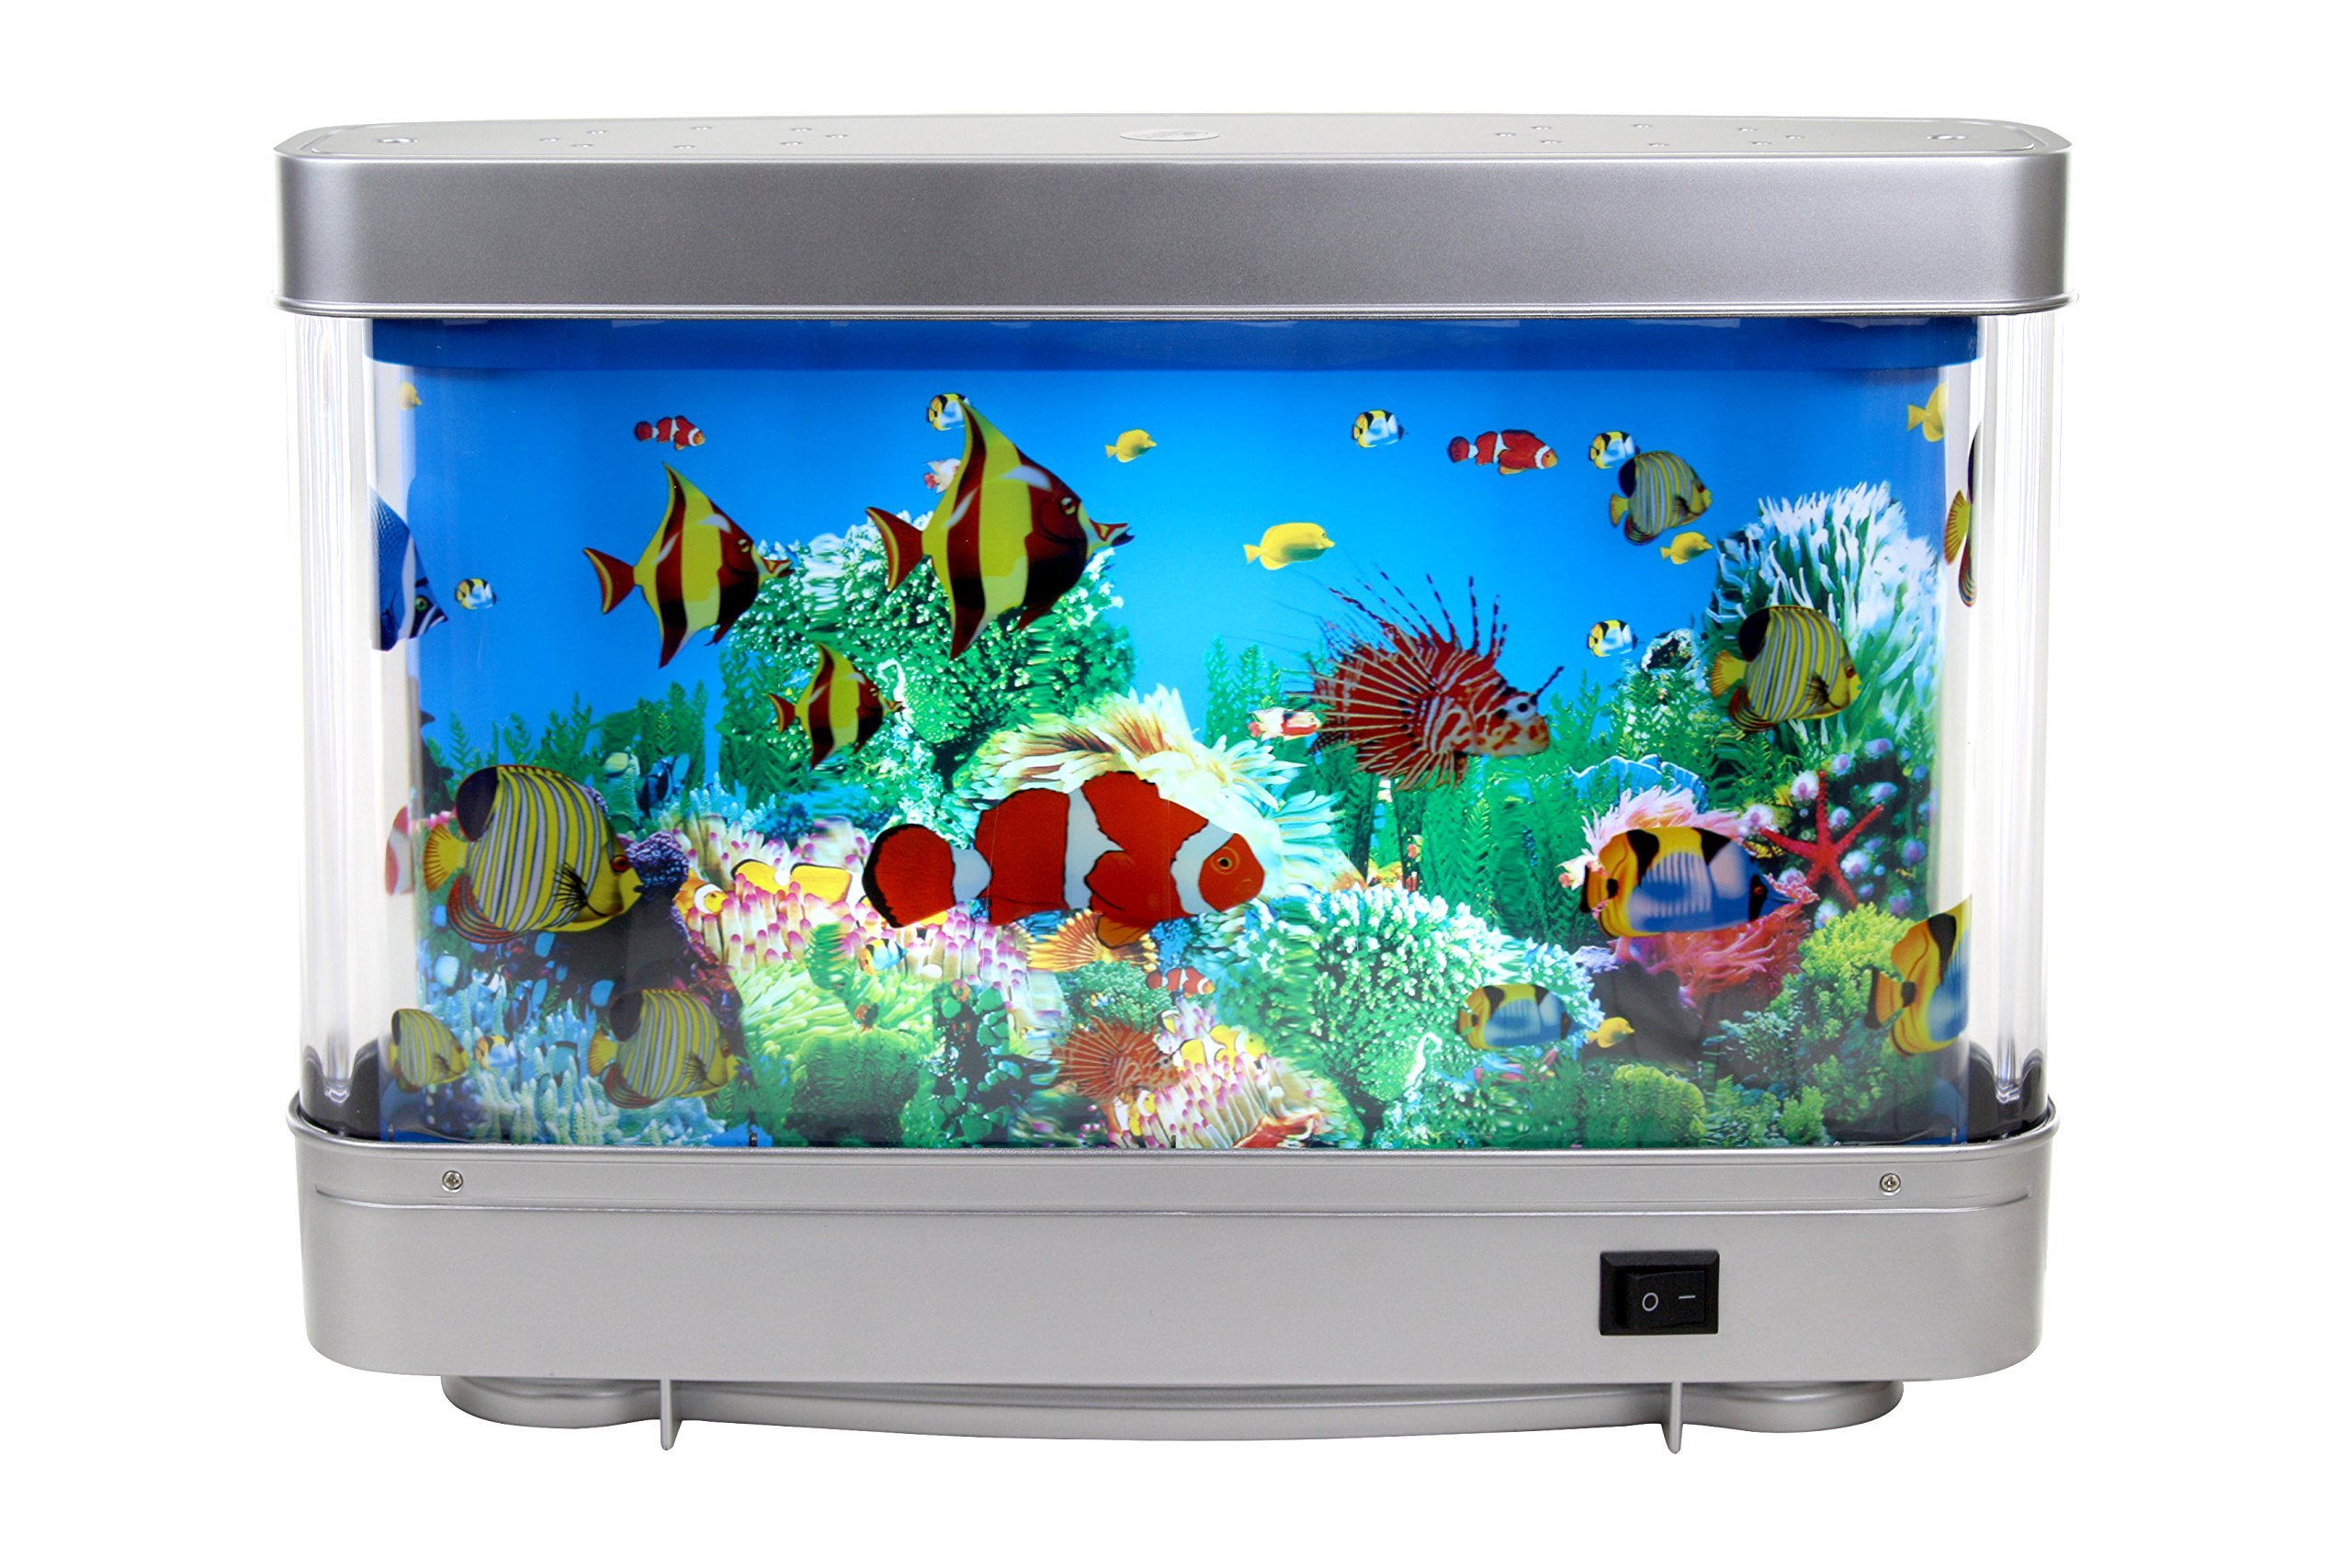 Lightahead Artificial Tropical Fish Aquarium Decorative Lamp Virtual Ocean in Motion (Marine Life A) by Lightahead